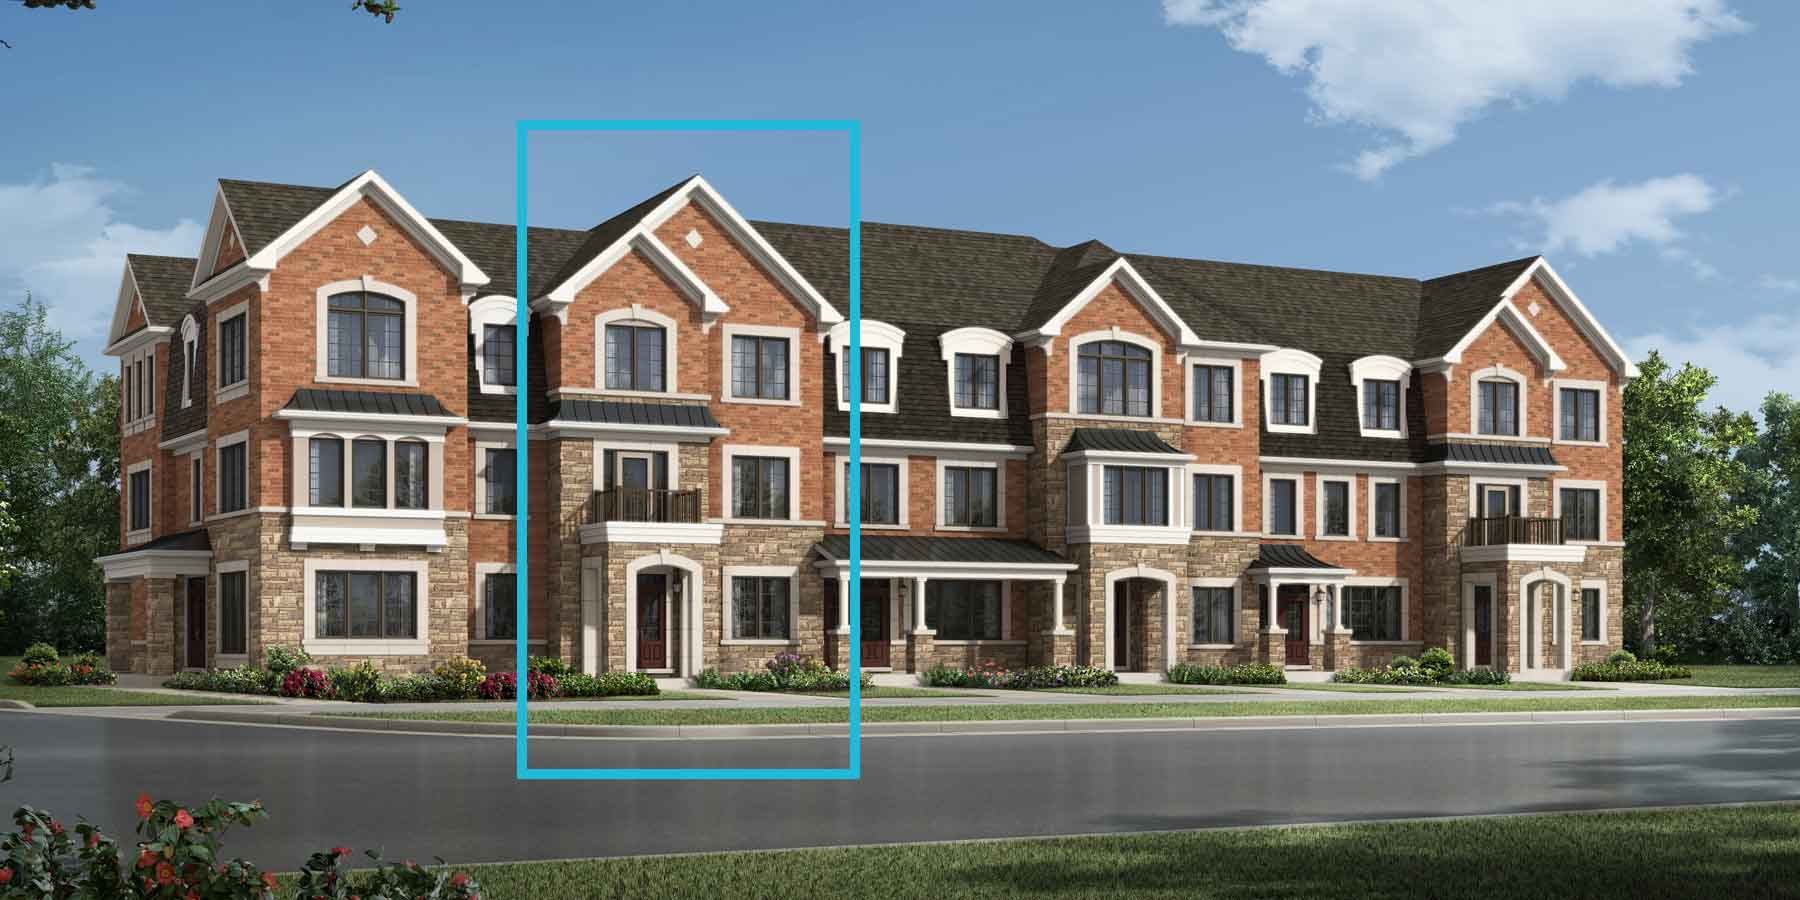 Northampton Plan TownHomes at Seaton Whitevale in Pickering Ontario by Mattamy Homes